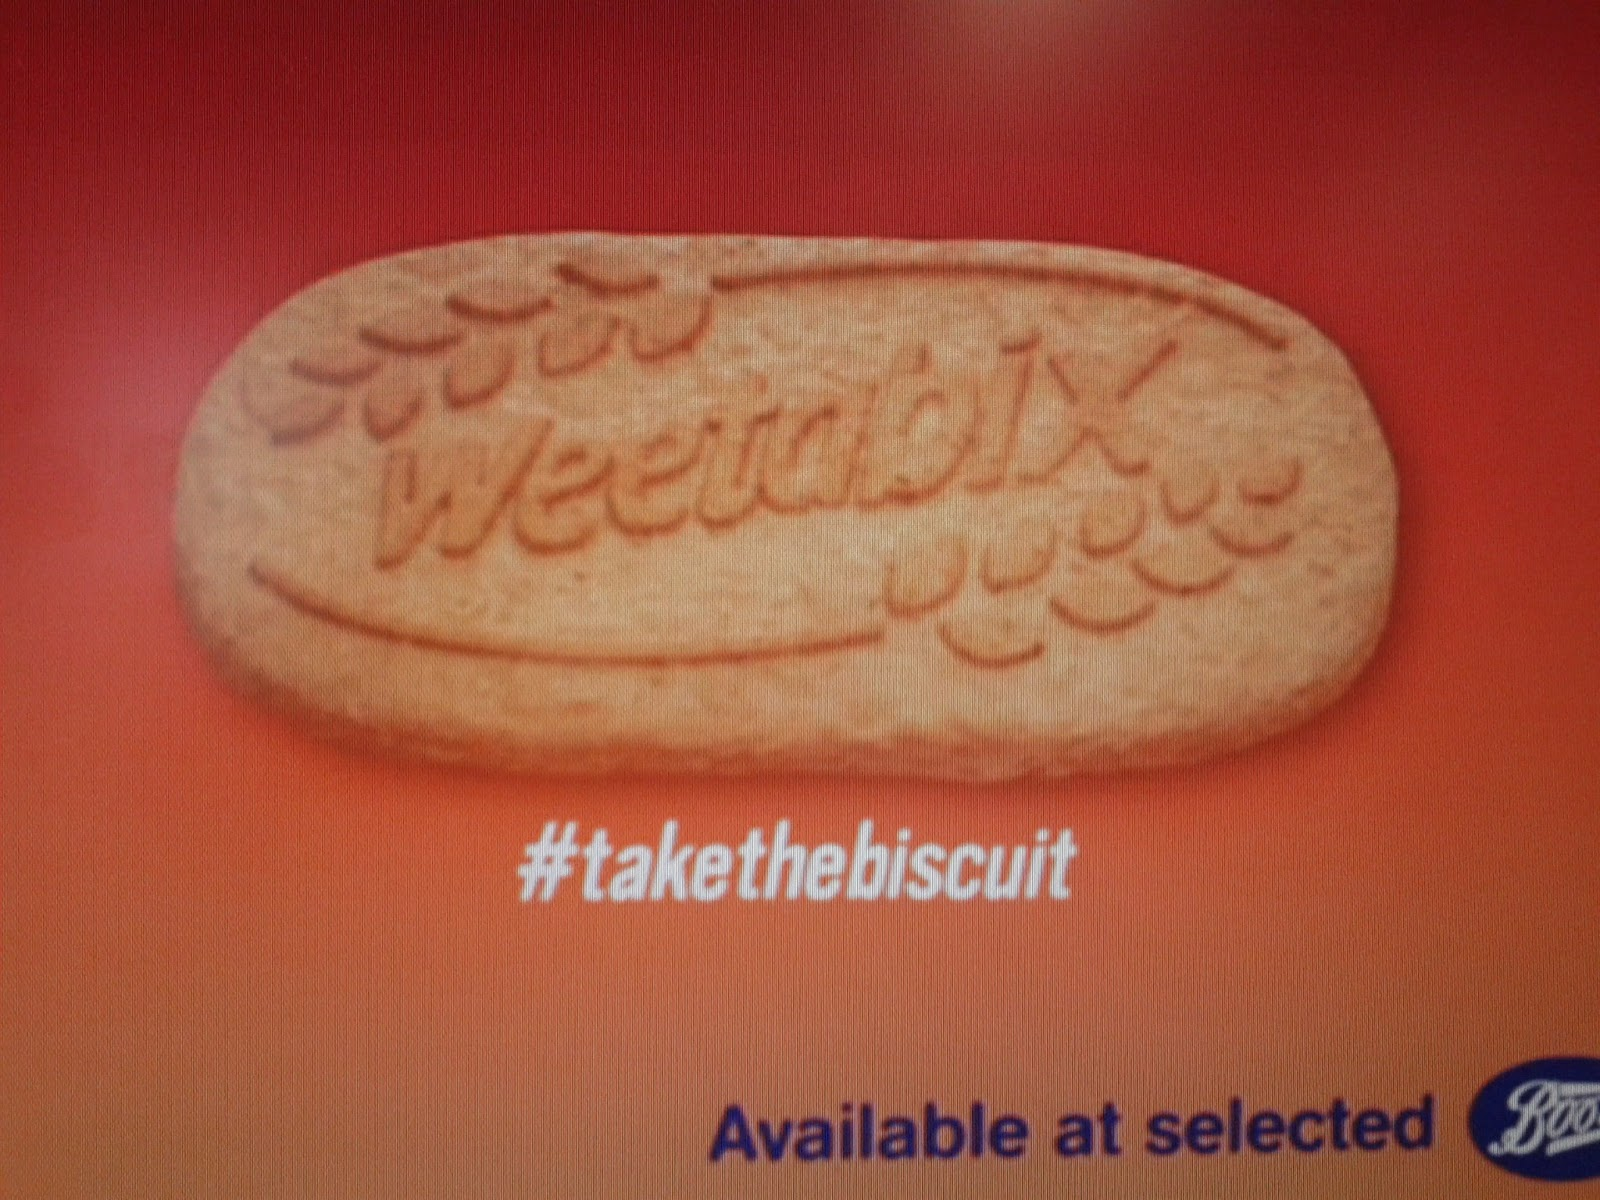 #takethebiscuit